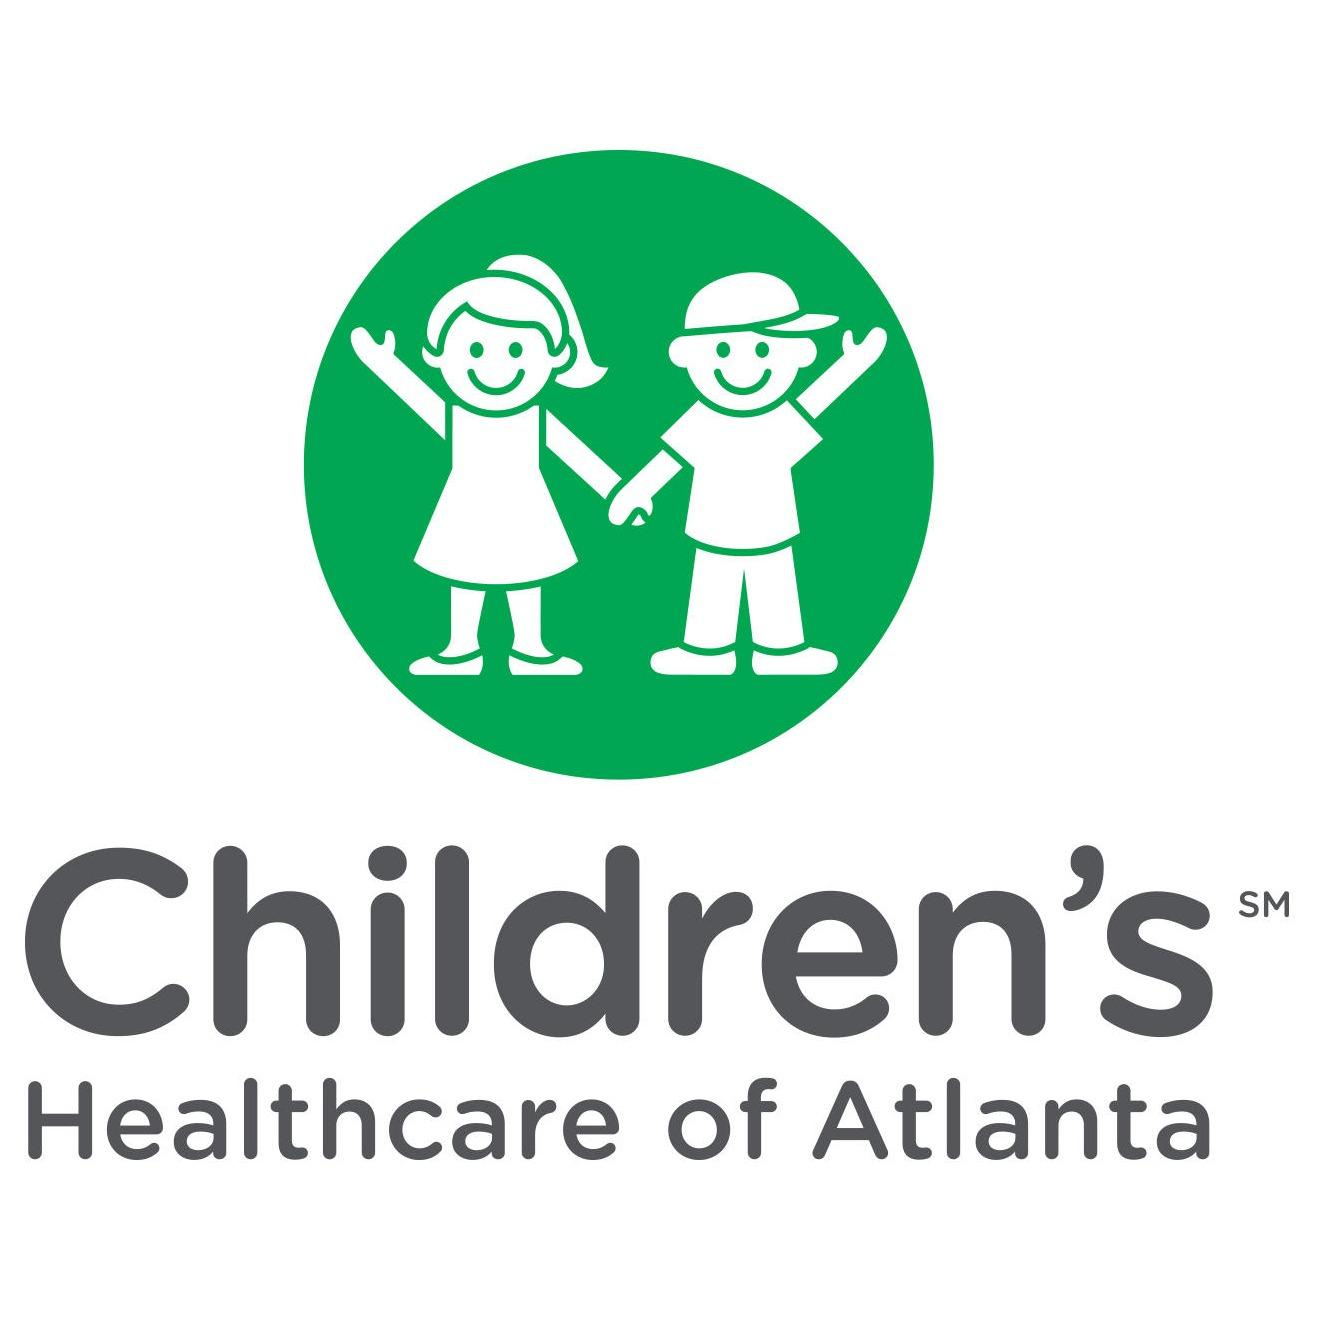 Children's Healthcare of Atlanta Orthotics and Prosthetics - Fayette image 1